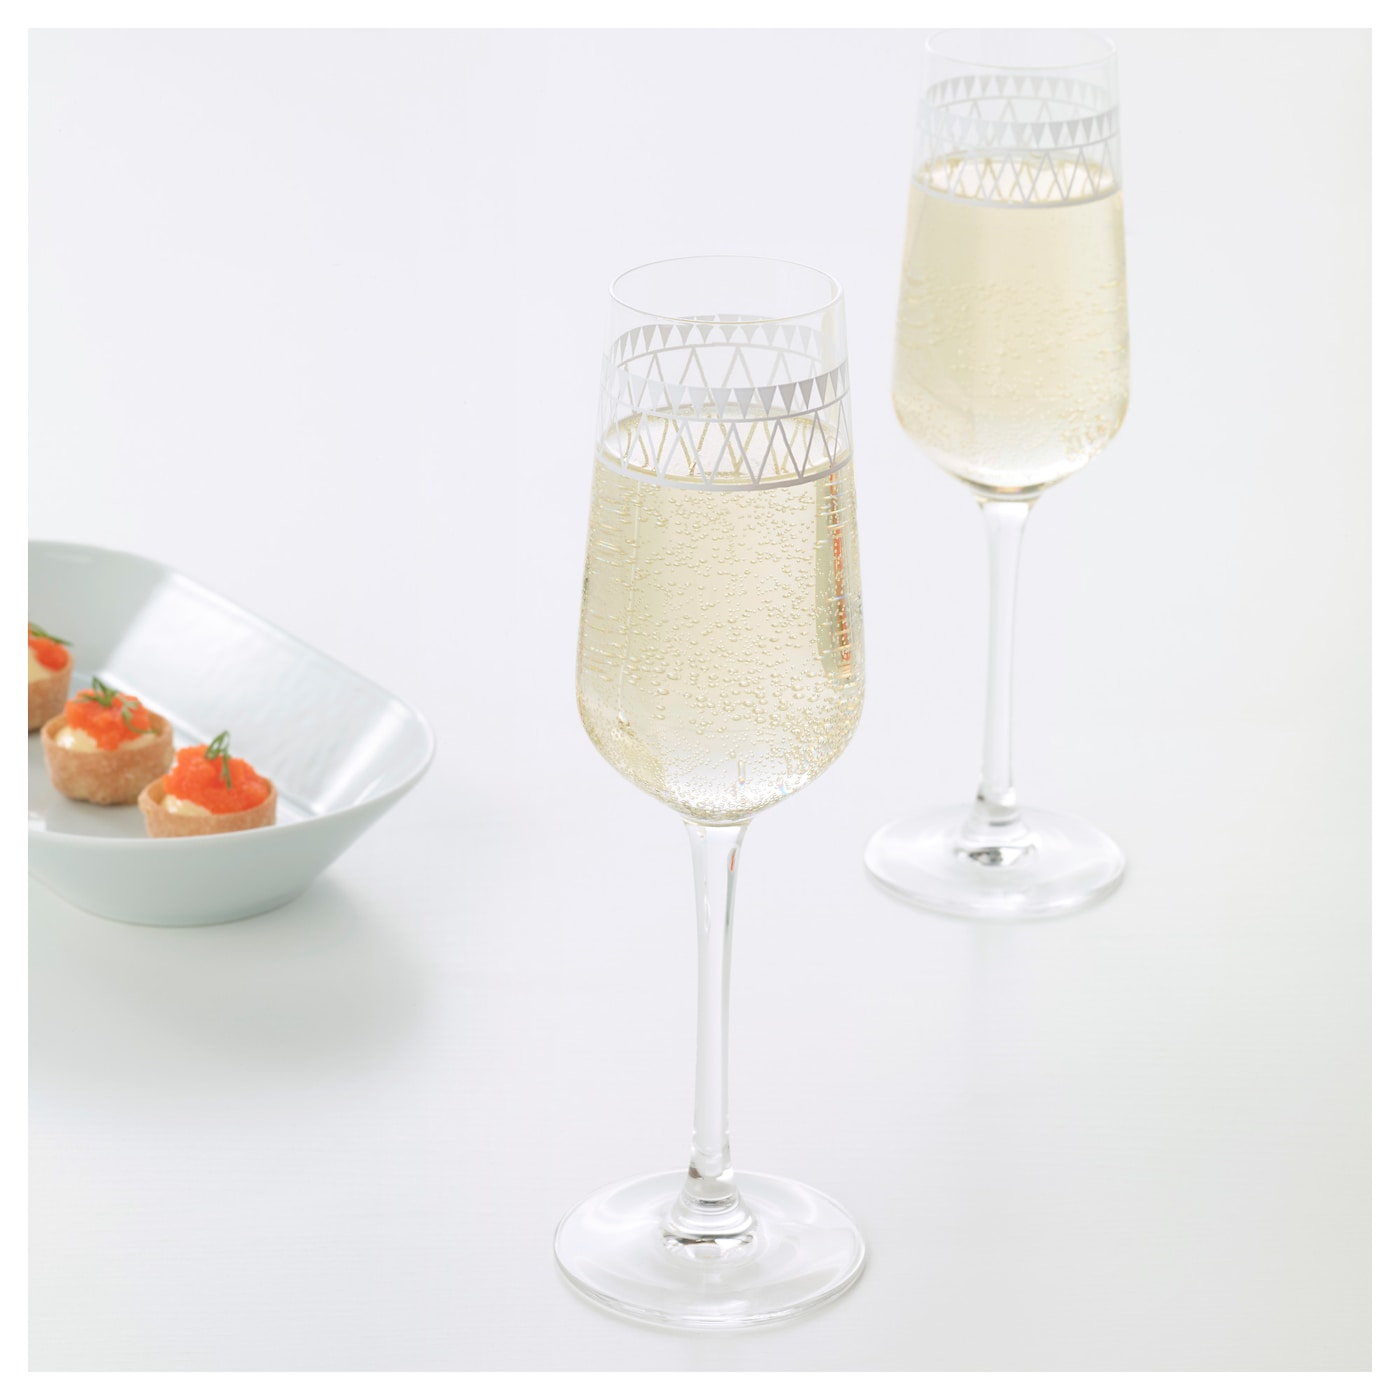 IKEA VINTER 2017 champagne glass